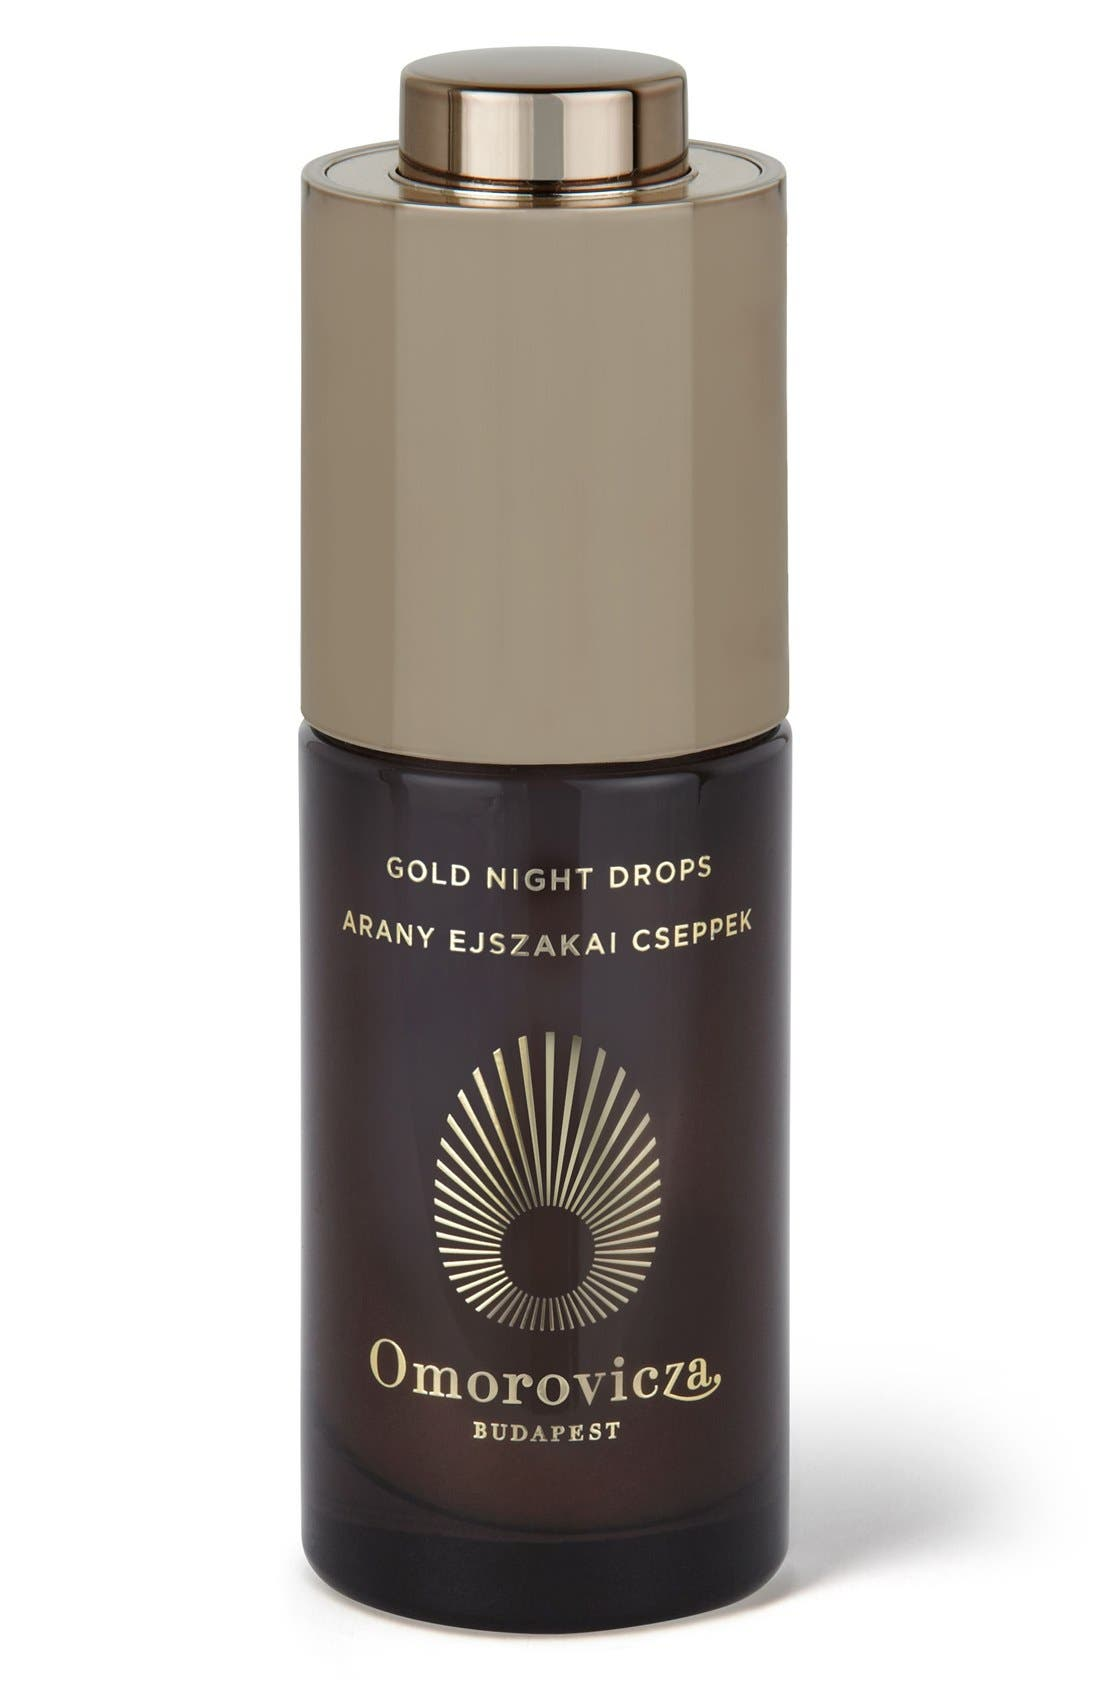 Omorovicza Gold Night Drops